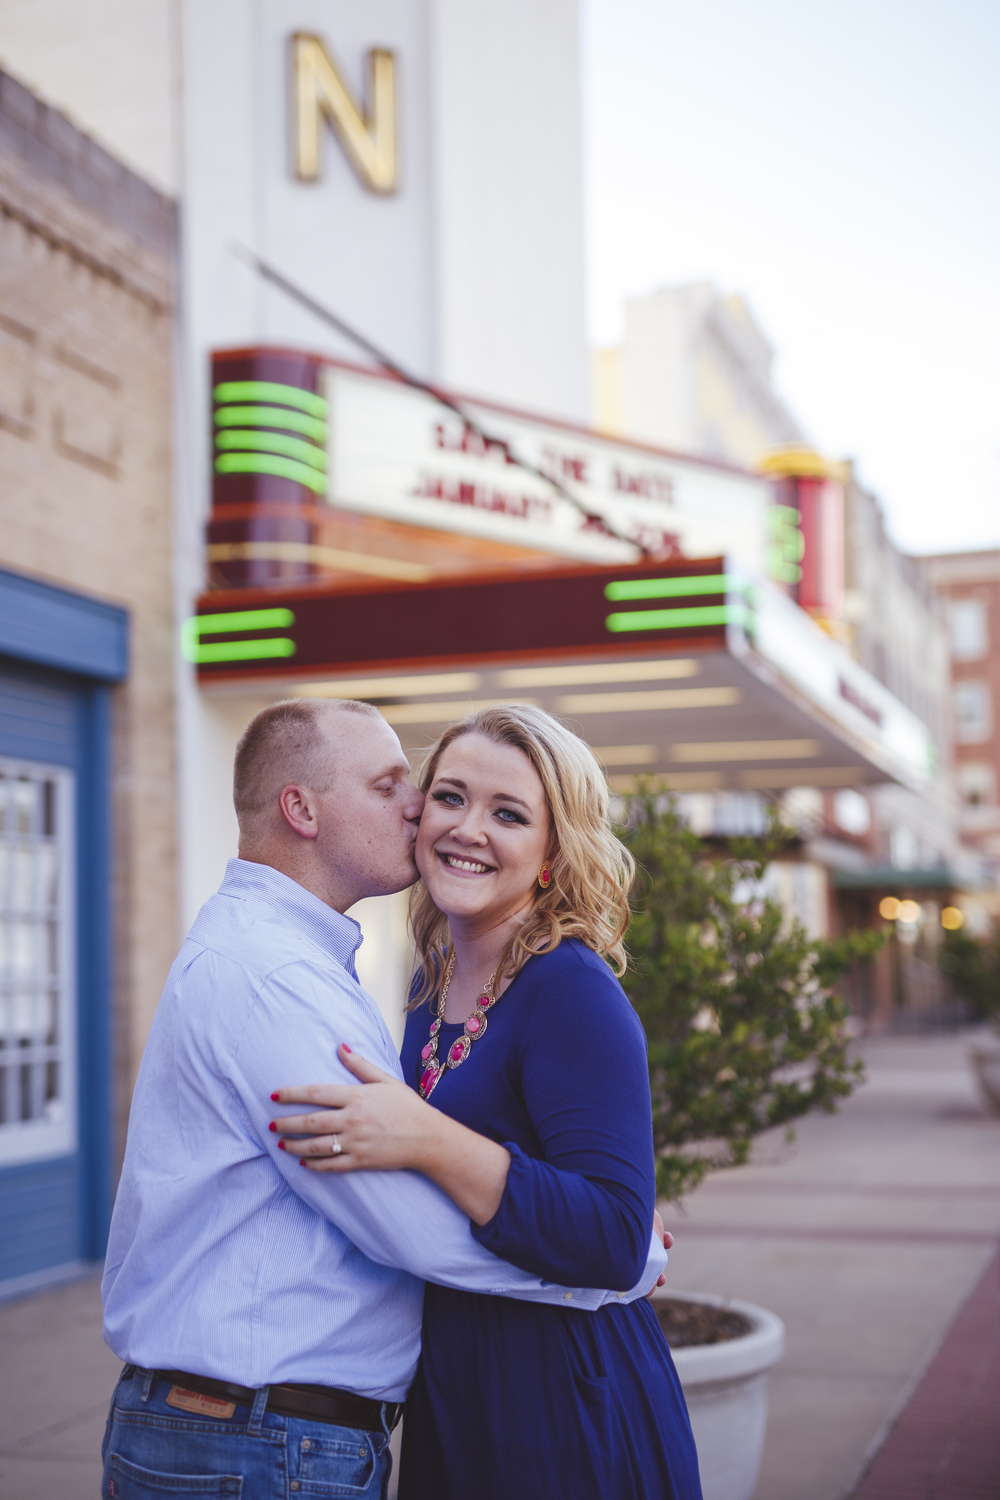 engagementshoot12723.jpg